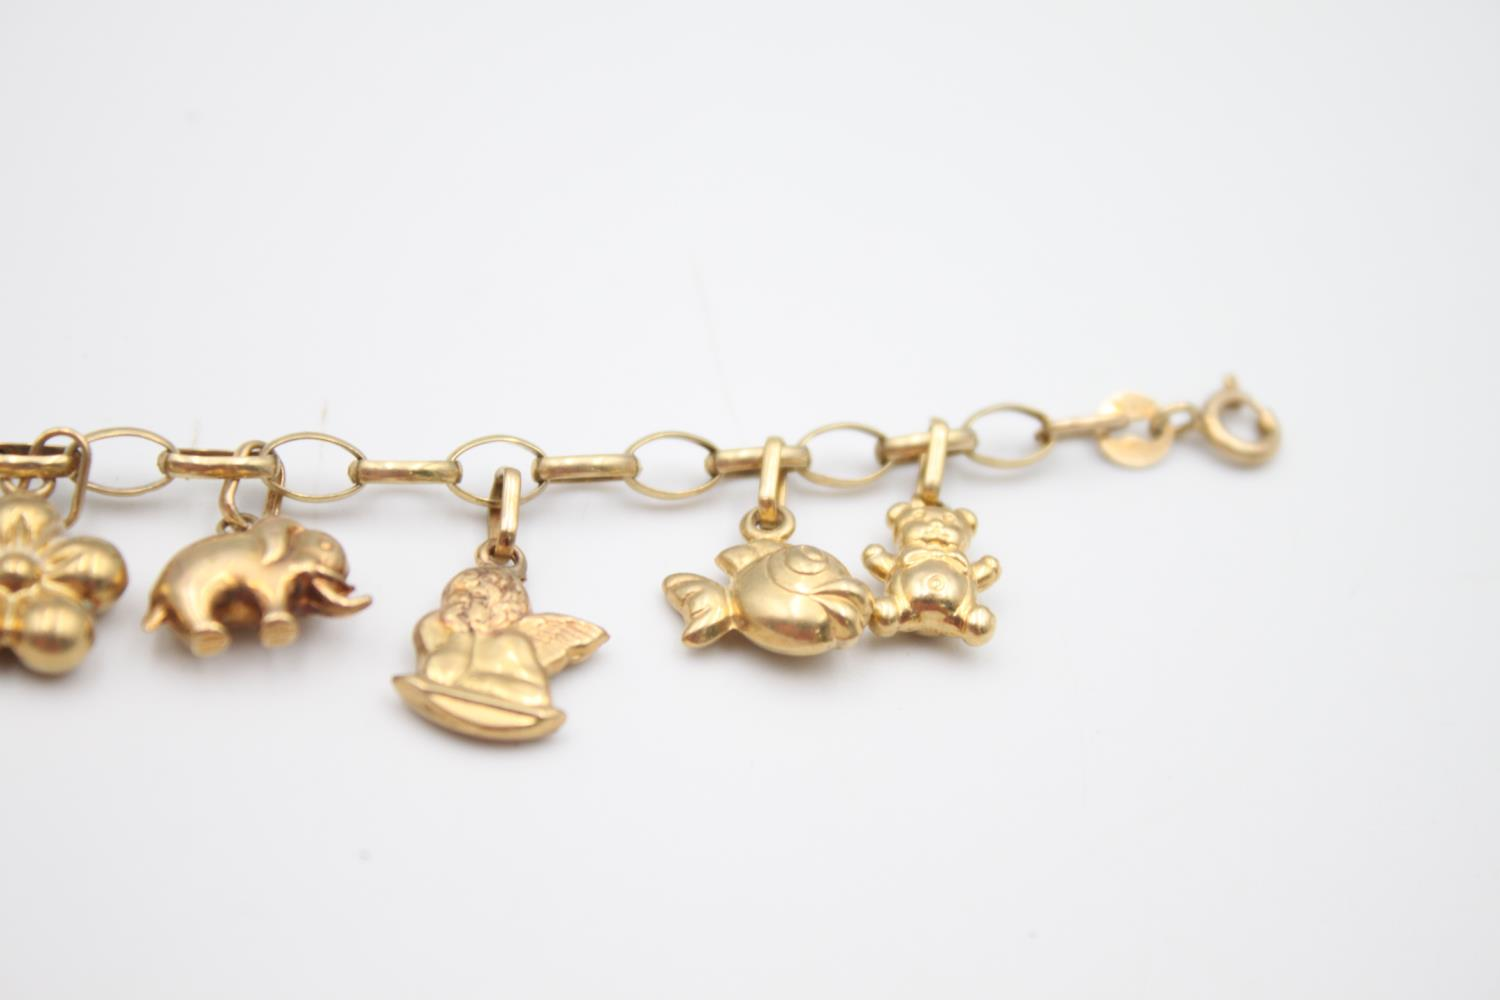 vintage 9ct gold rolo link charm bracelet with a variety of charms 5.7g - Image 7 of 7